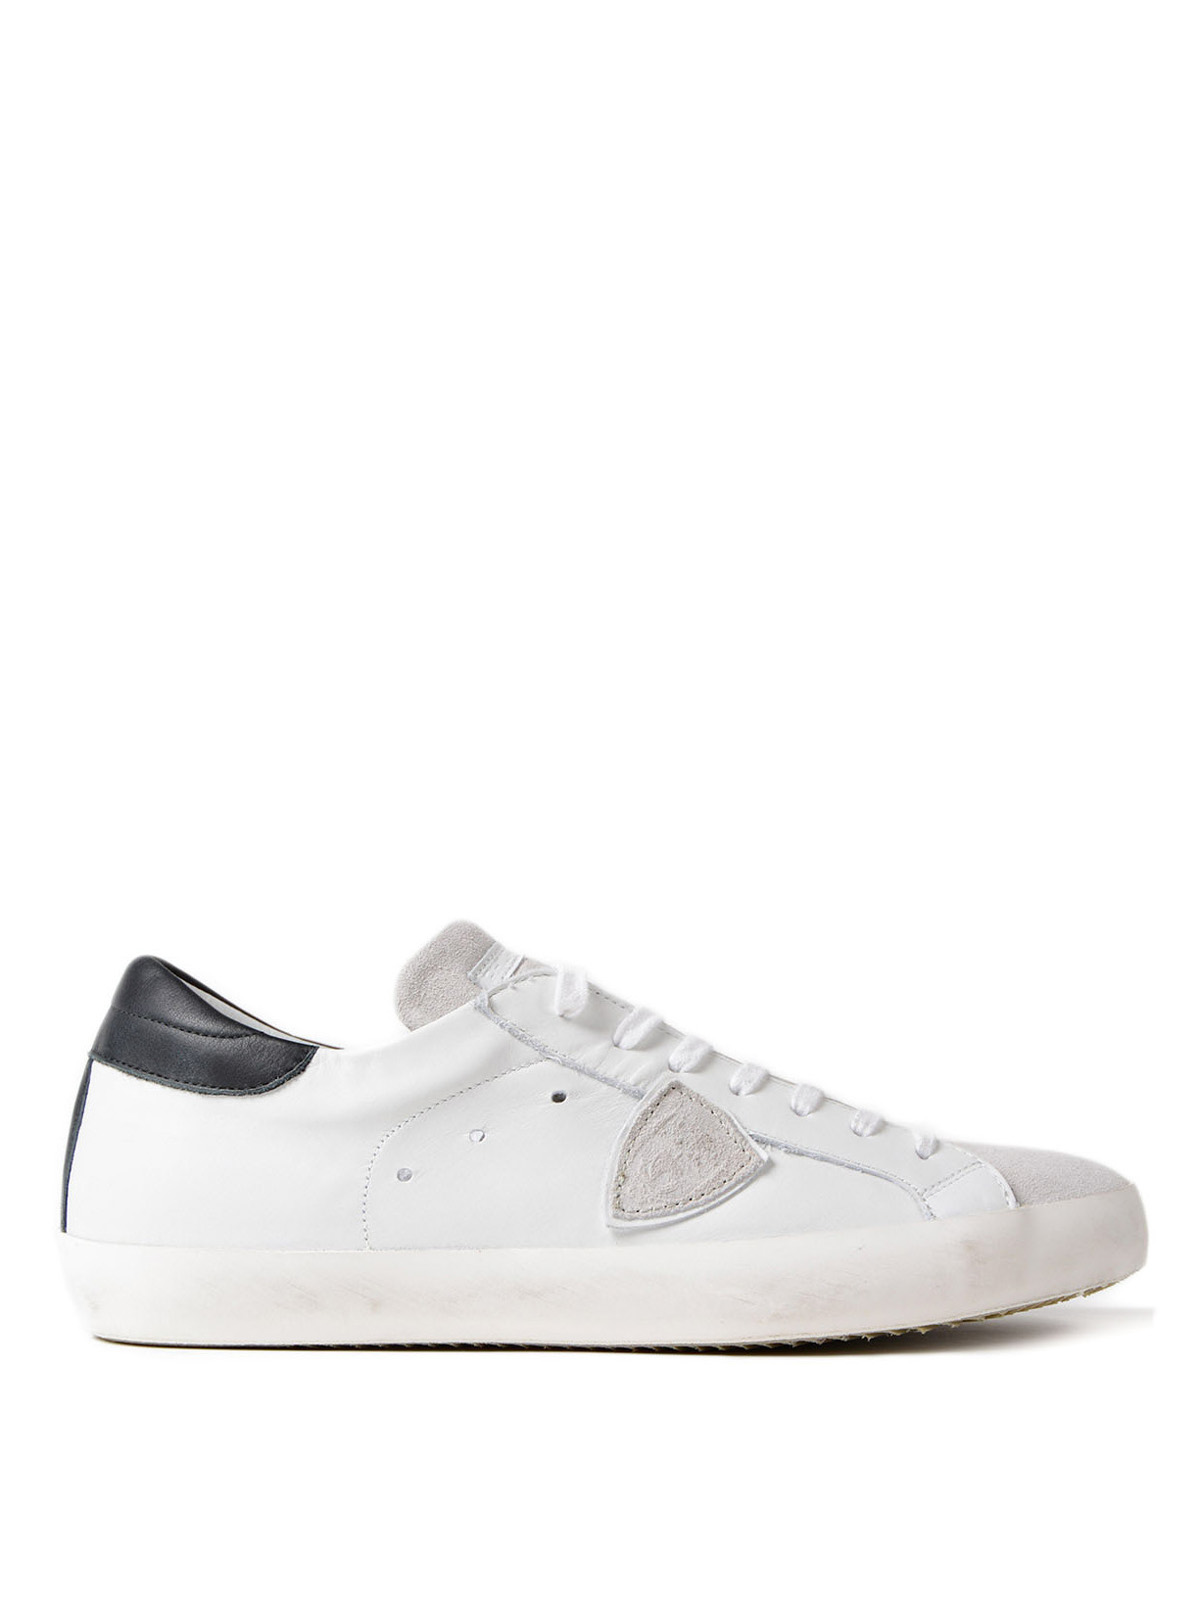 classic low top trainers - White Philippe Model hZU9weT3Z